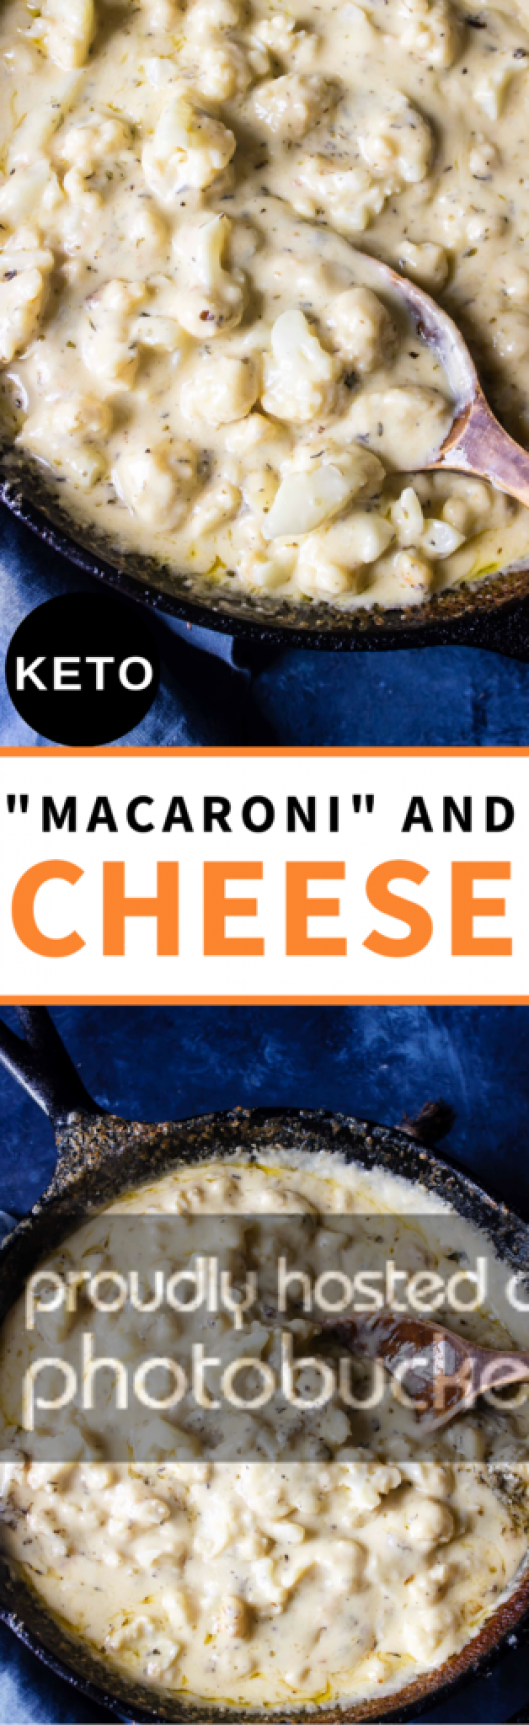 This keto low-carb macaroni and cheese will be a hit with the entire family!